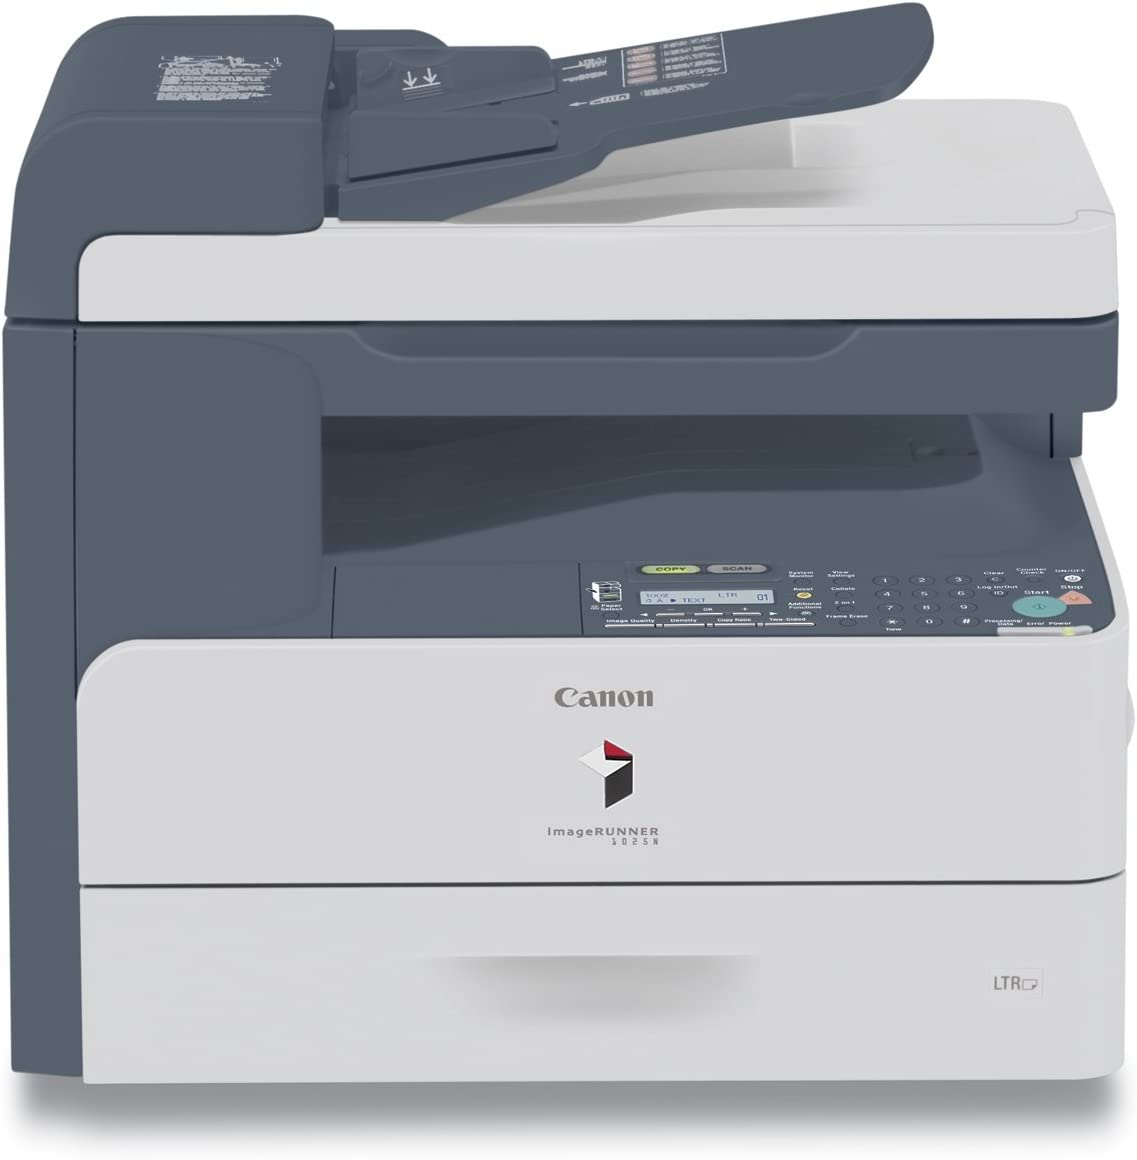 imageRUNNER Special price 1025iF List price